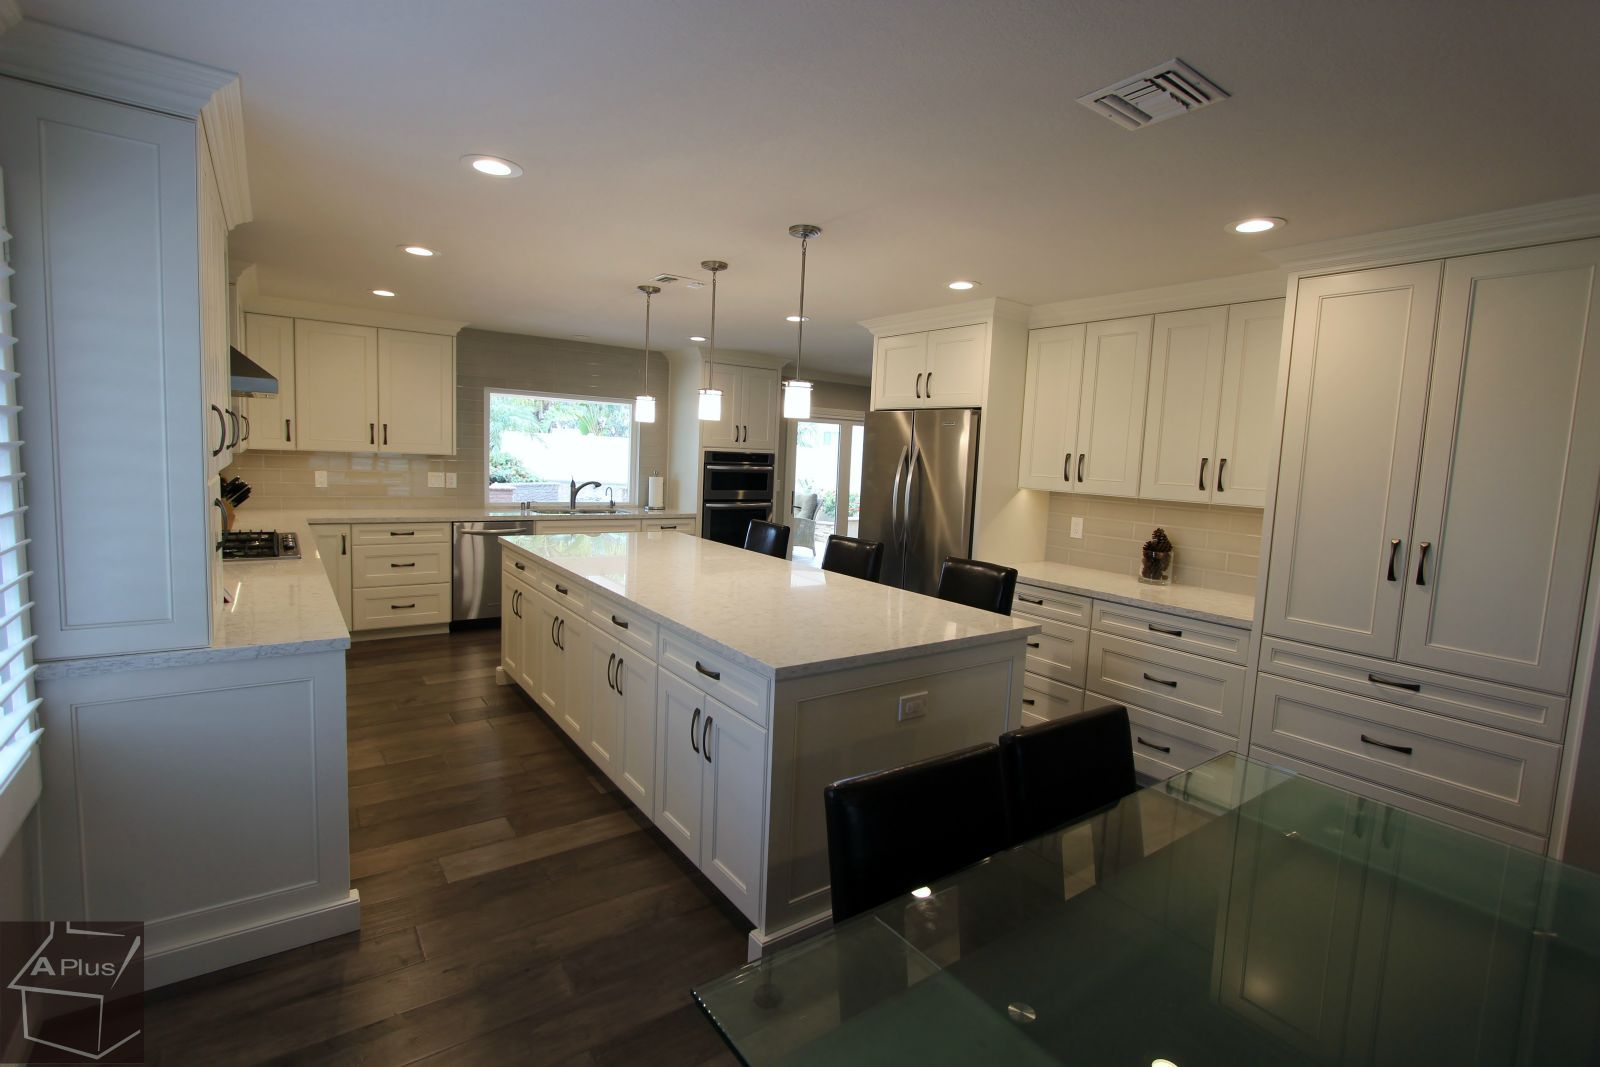 Transitional Kitchen U0026 Home Remodel With #custom White Cabinets In Yorba  Linda Orange County